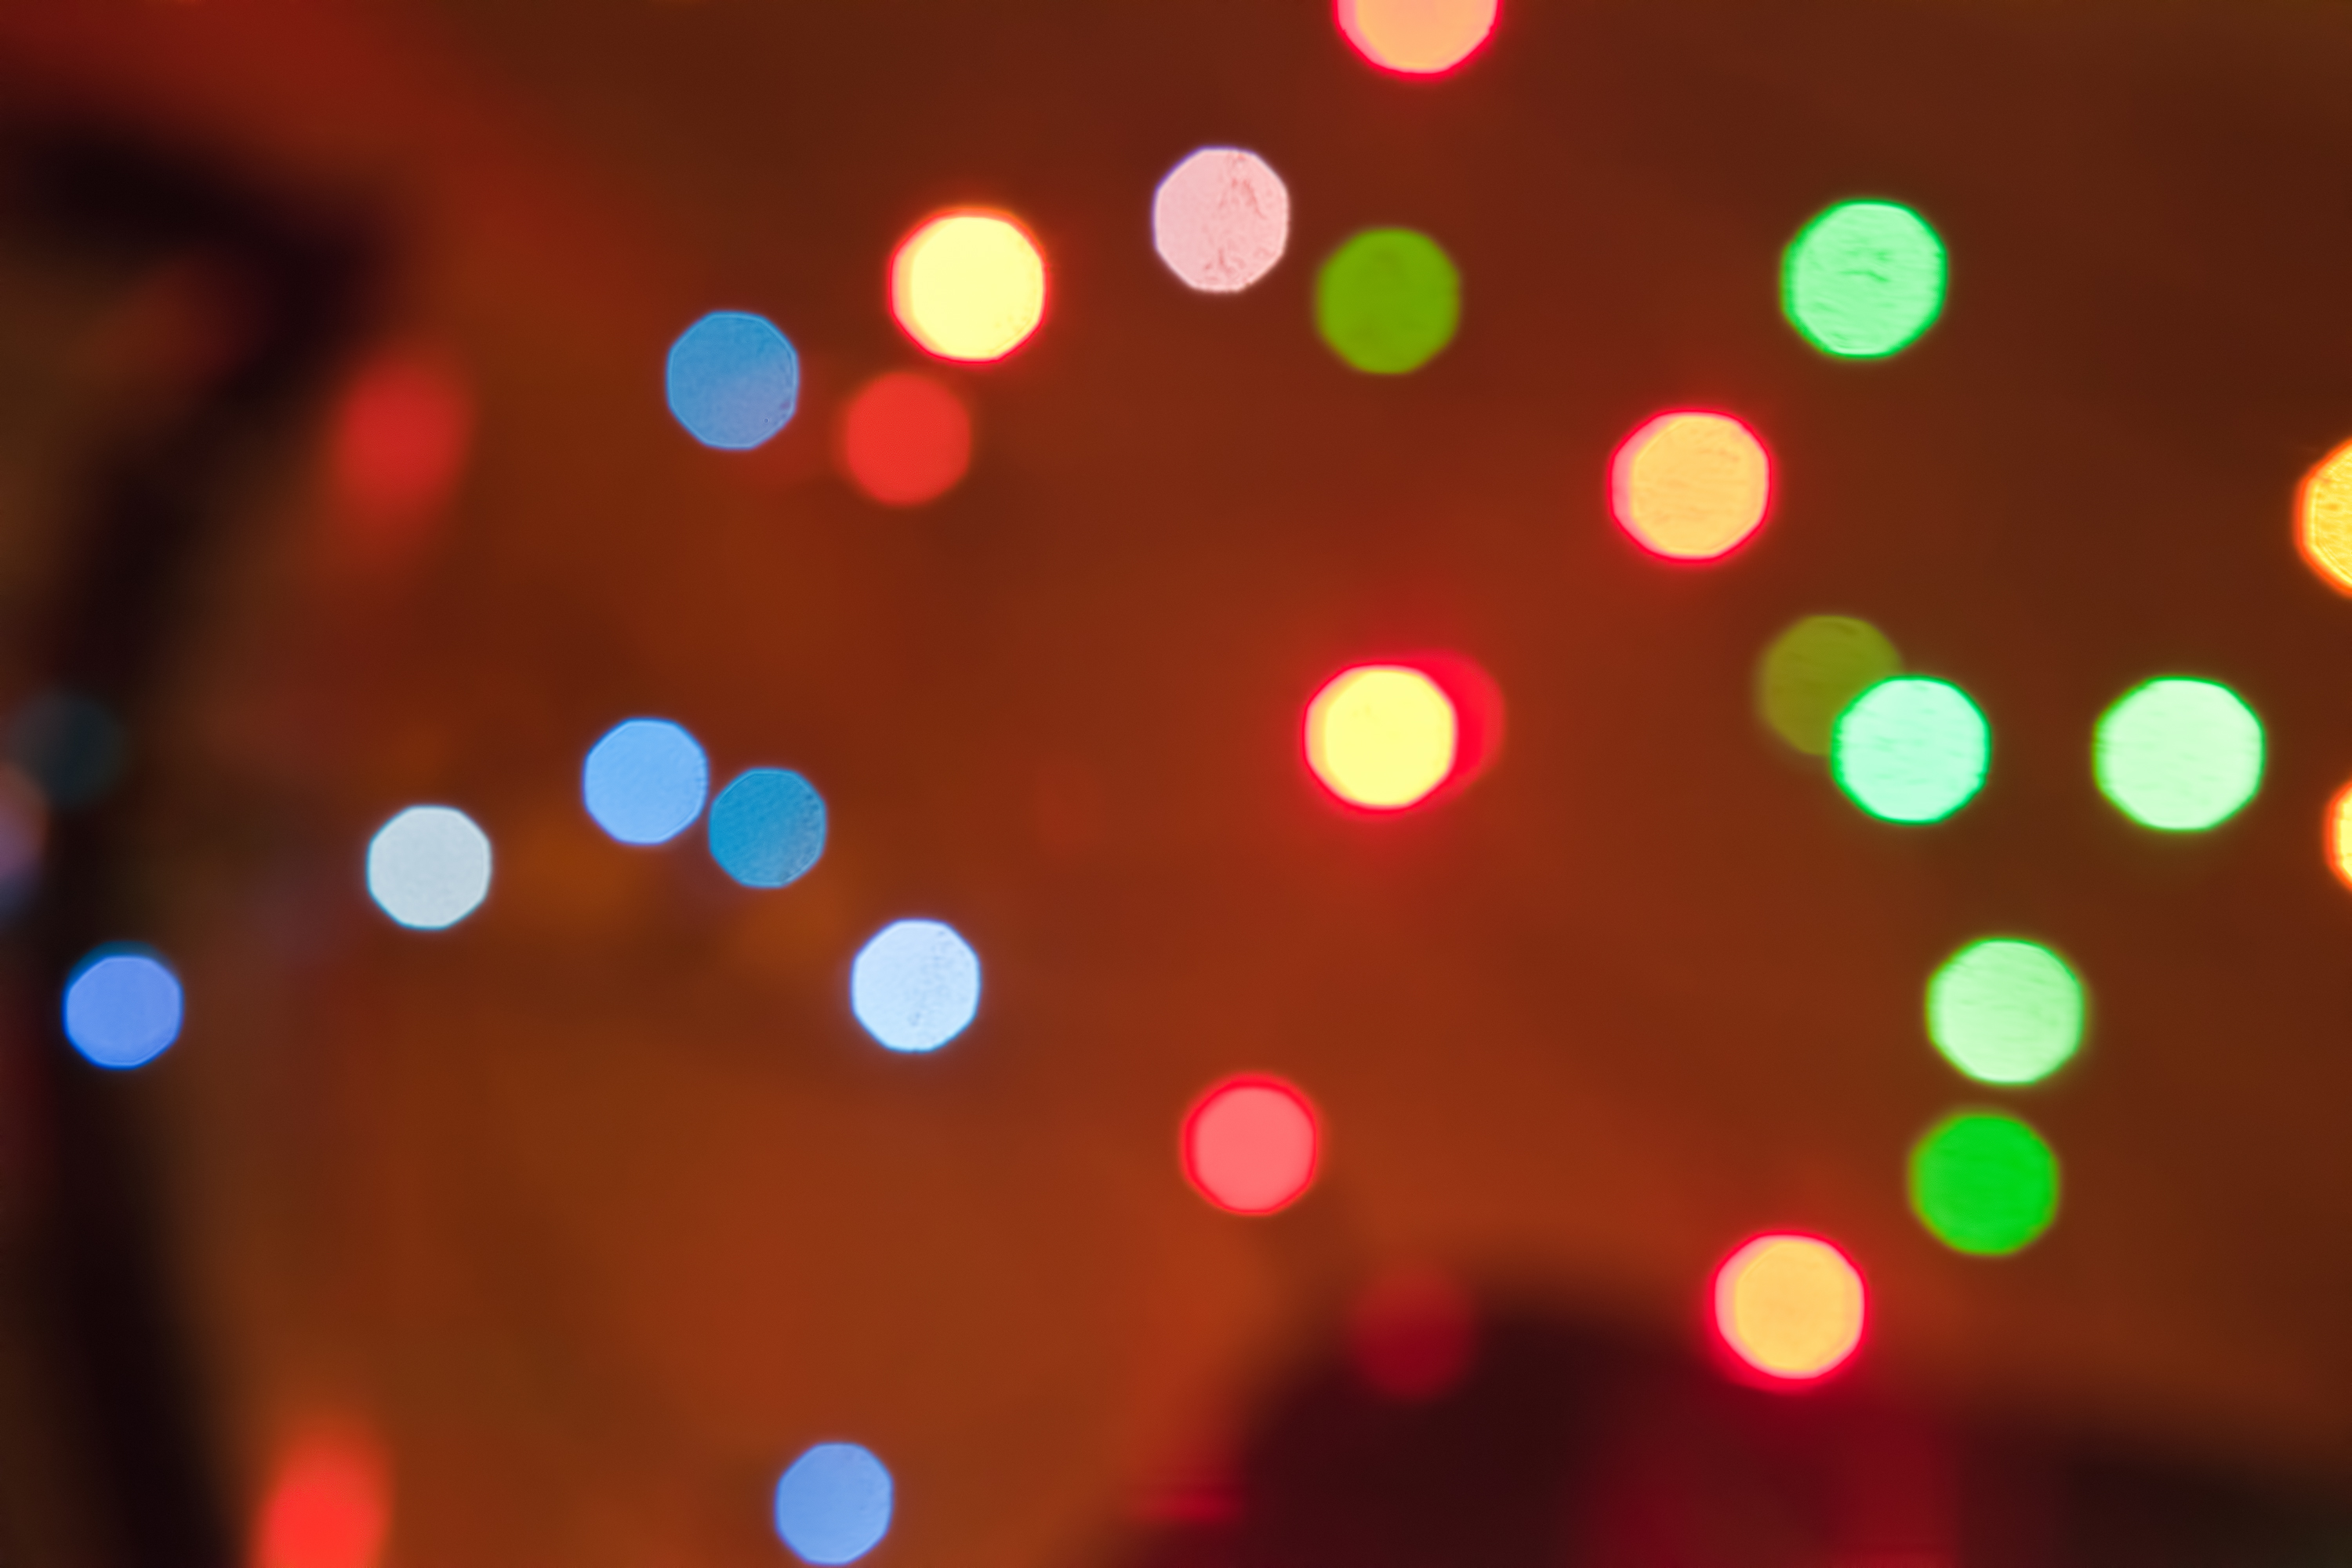 abstract background, Abstract, Blur, Bokeh, Bright, HQ Photo